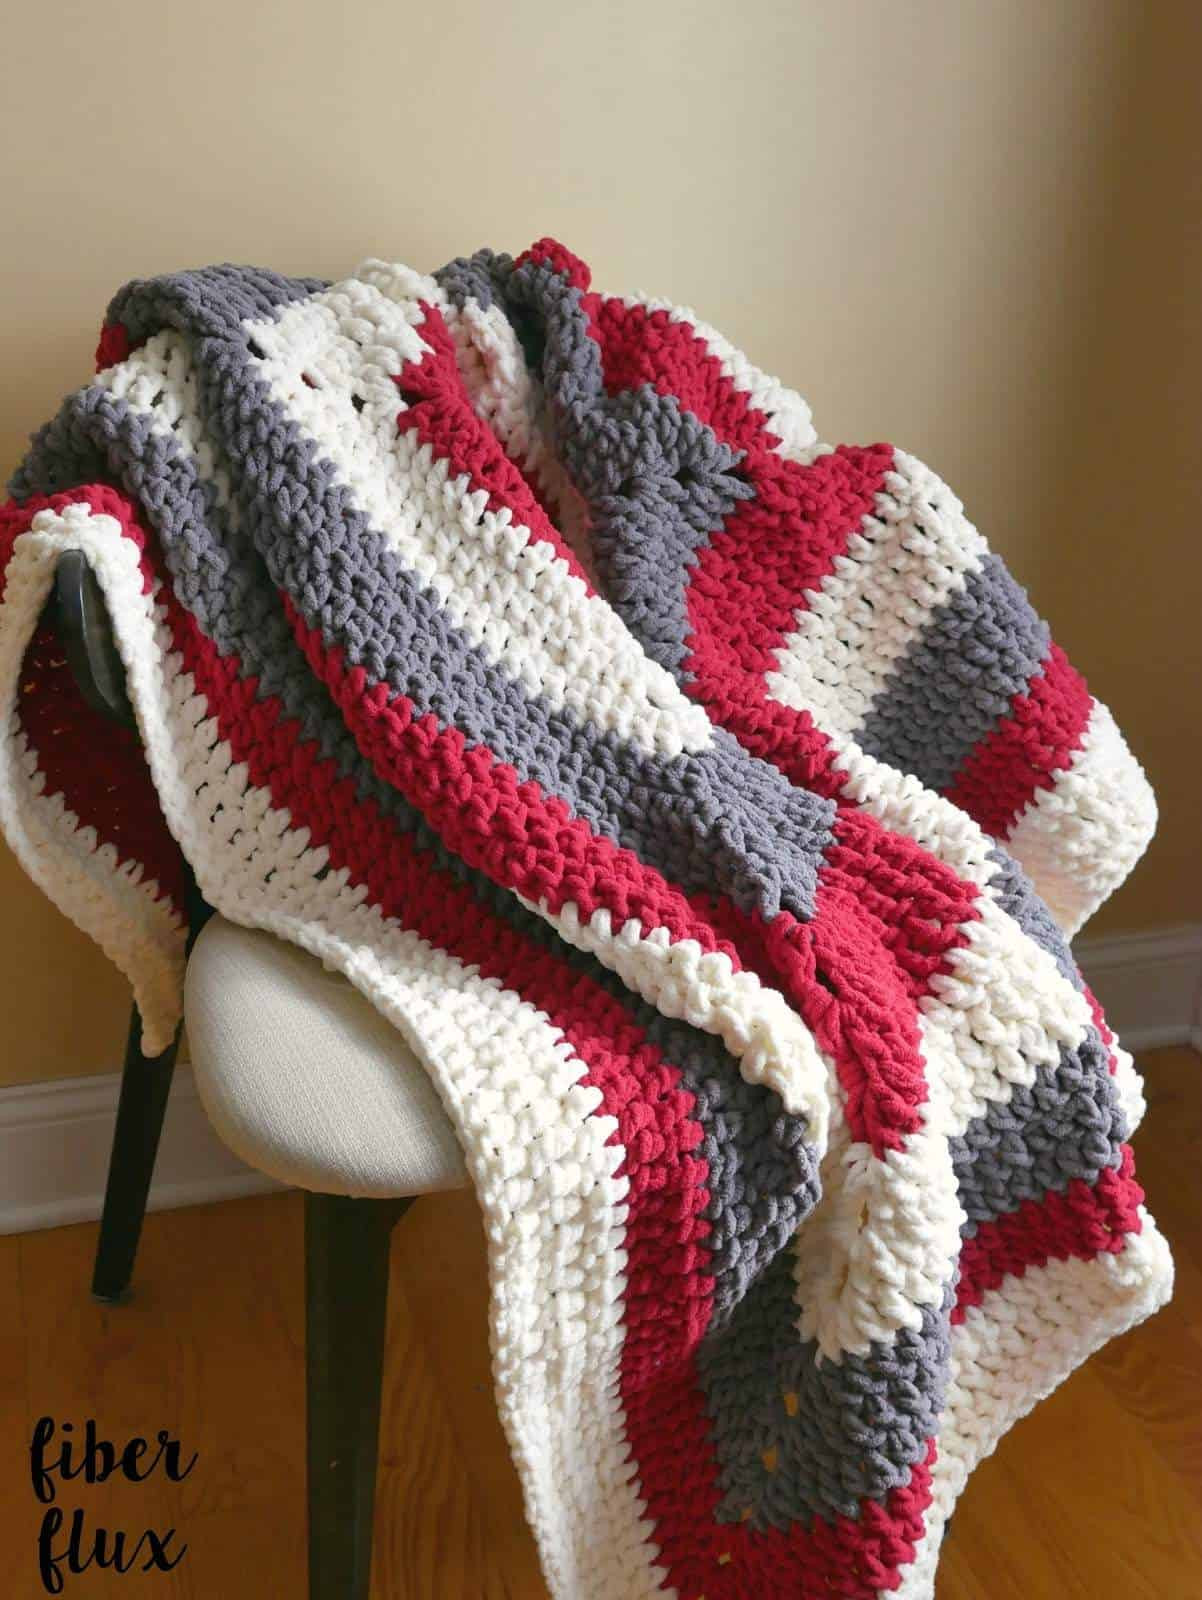 Blanket Patterns New 20 Awesome Crochet Blanket Patterns for Beginners Ideal Me Of Fresh 49 Pics Blanket Patterns